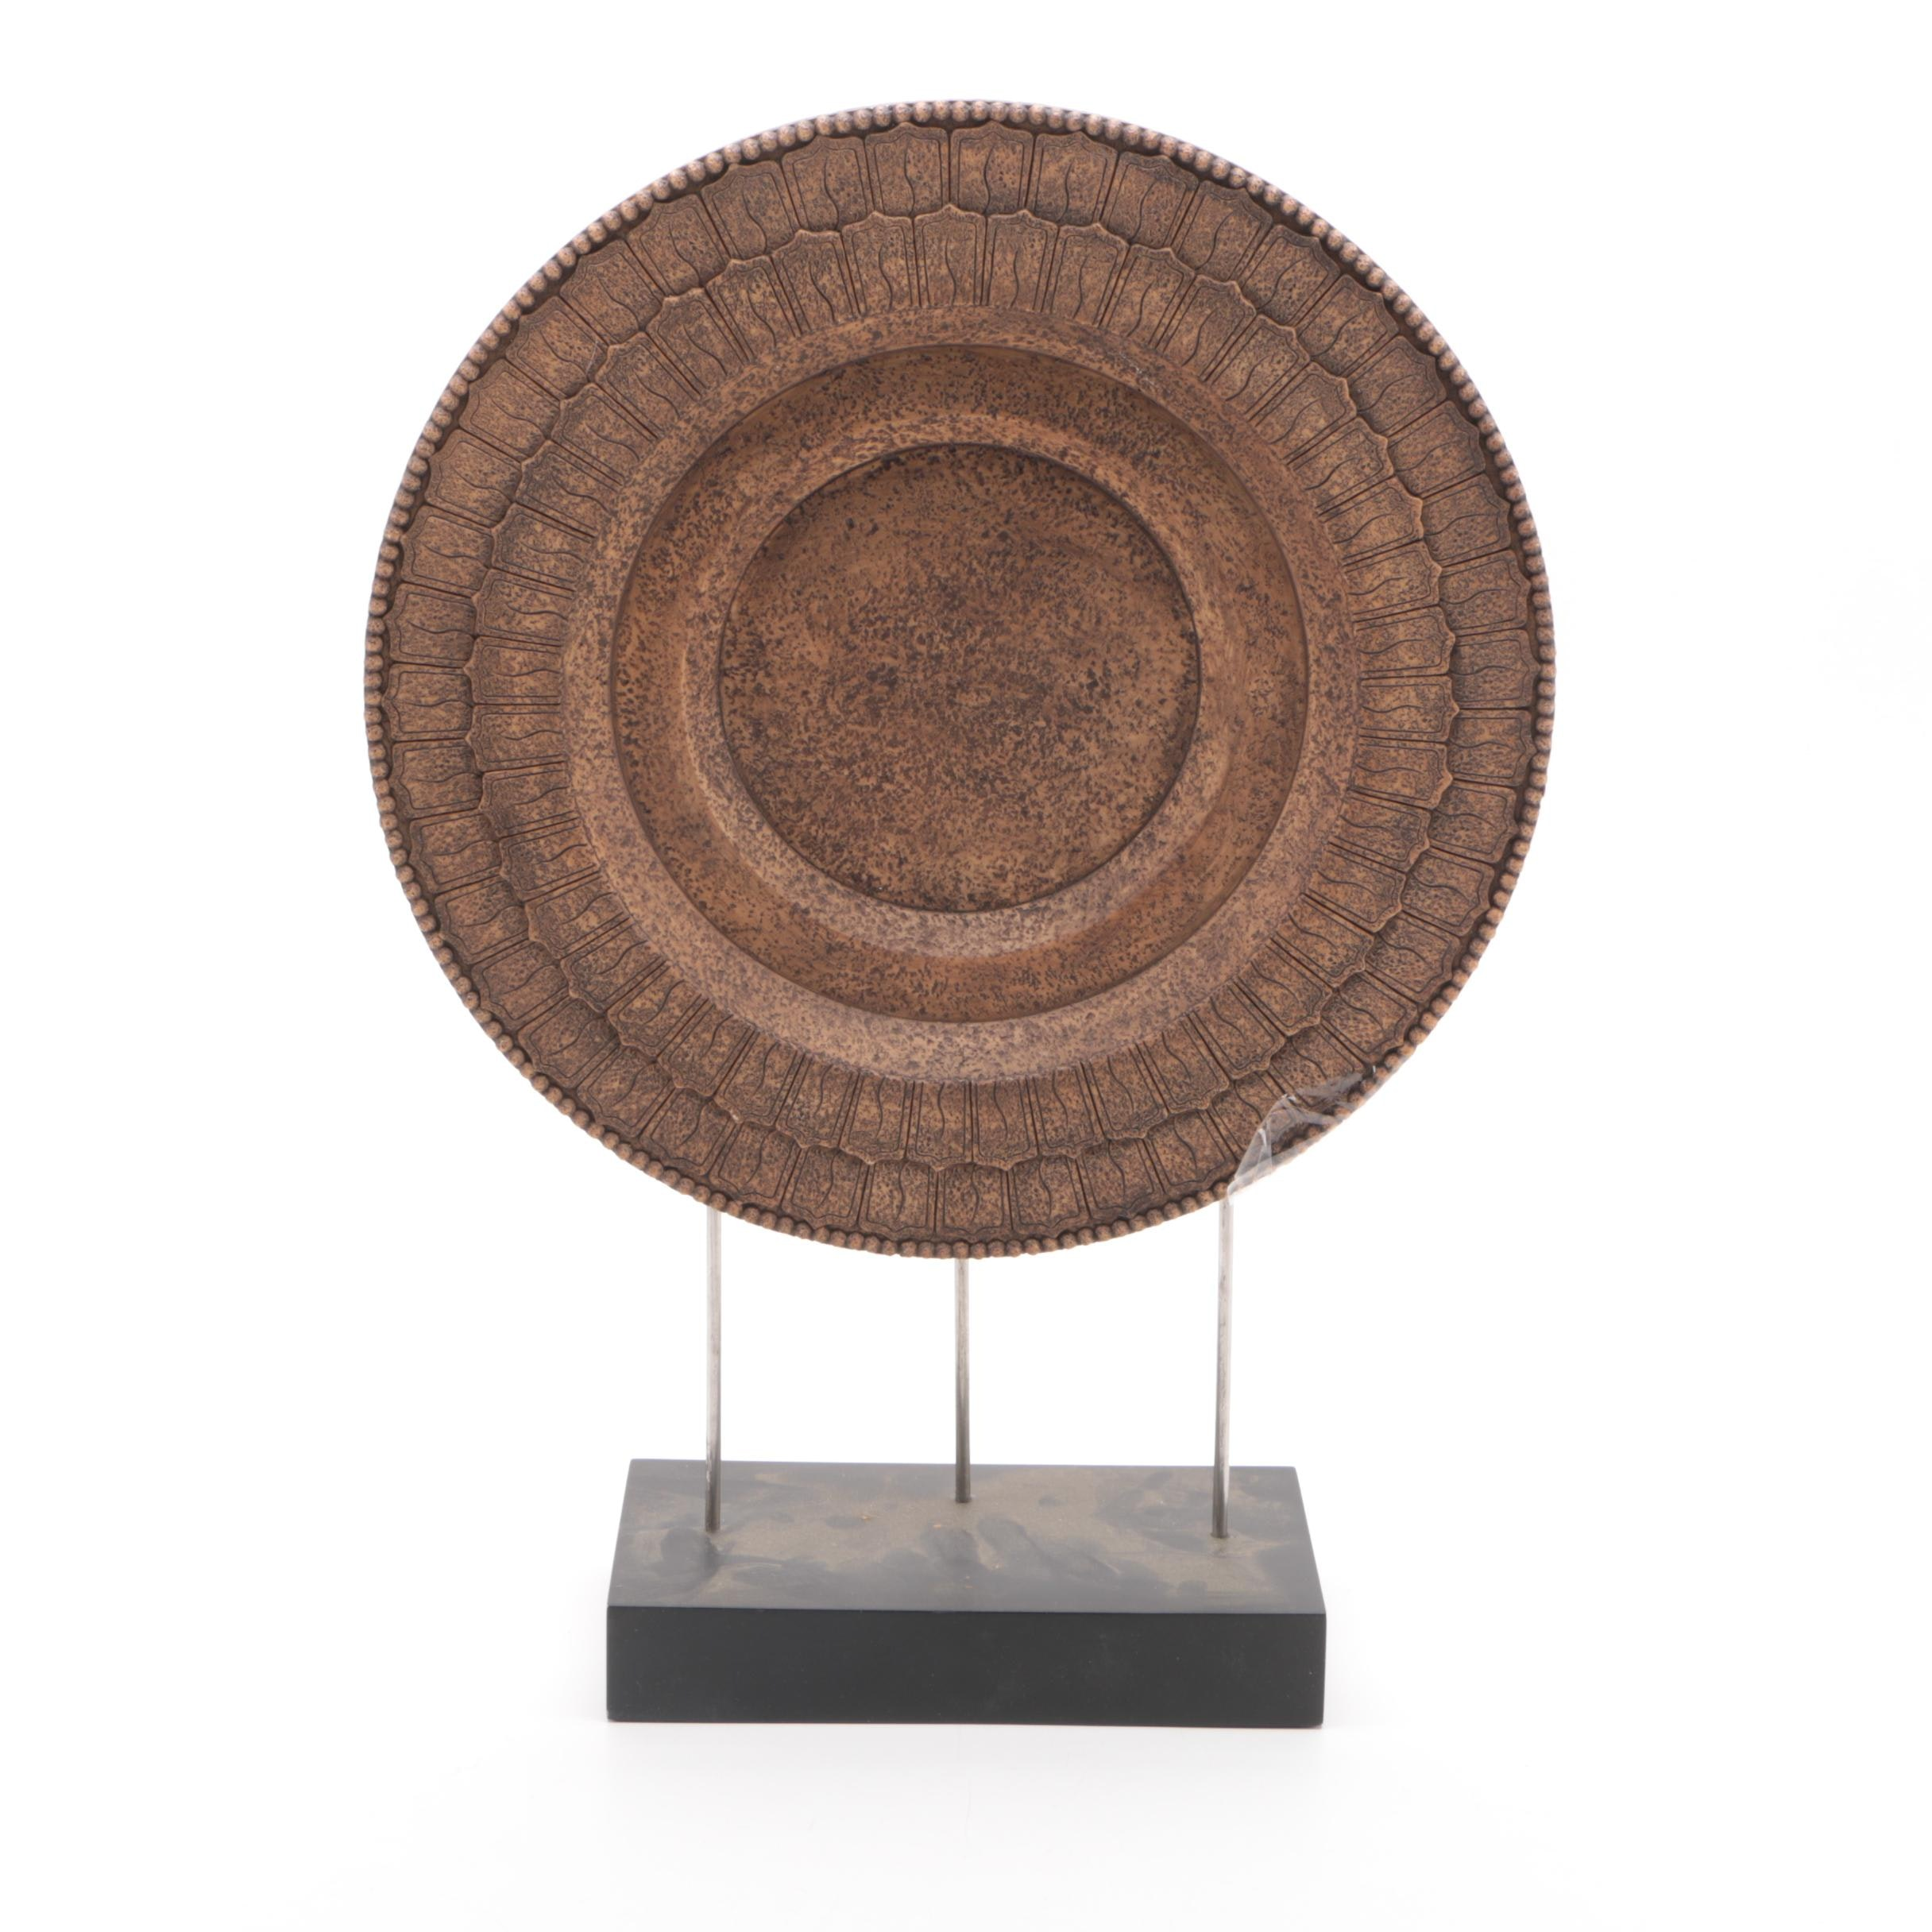 Decorative Round Plate on Stand